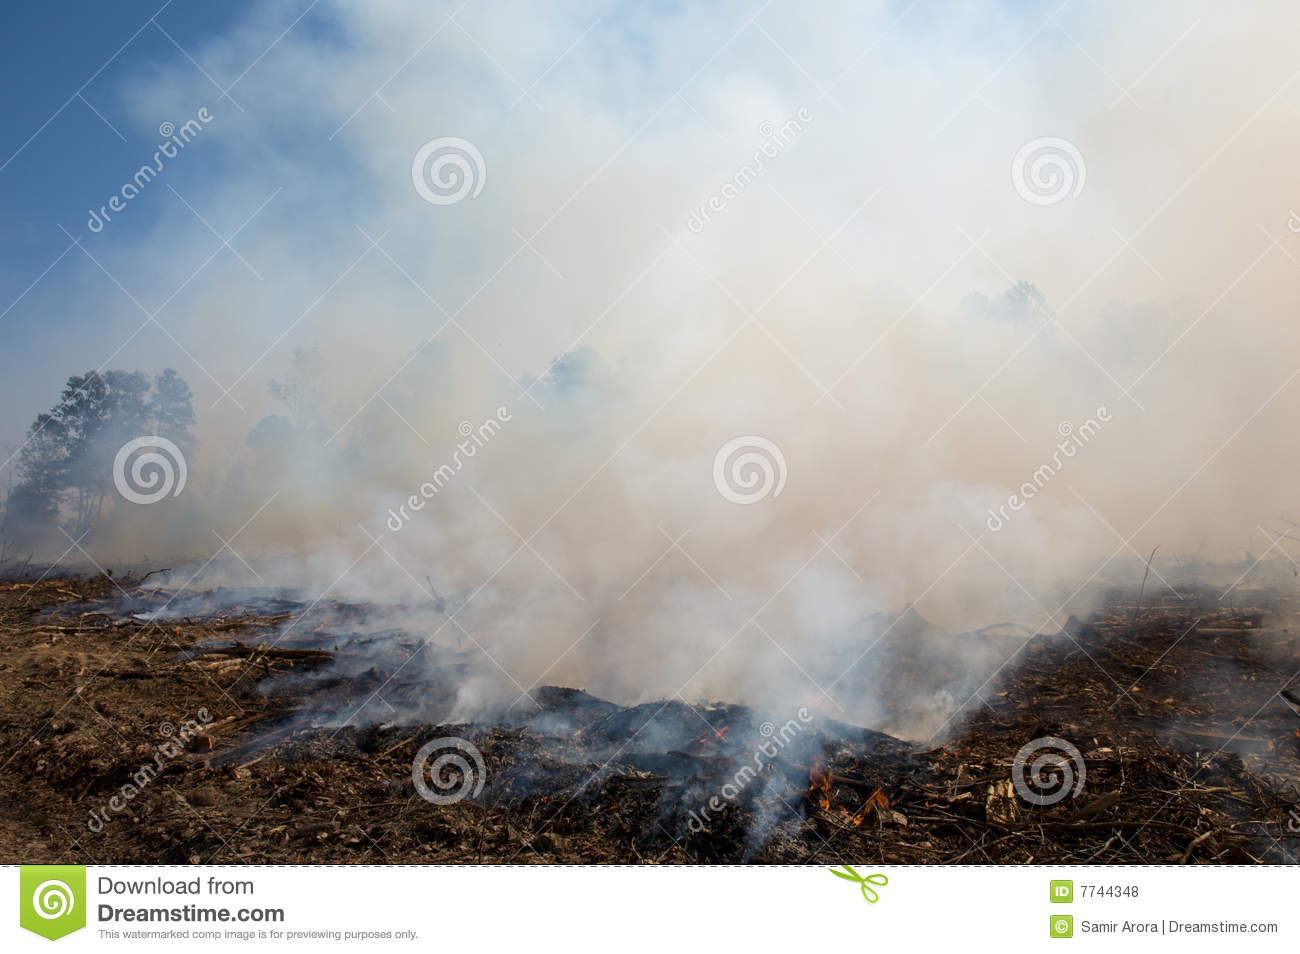 Smoke, after a prescribed fire burn